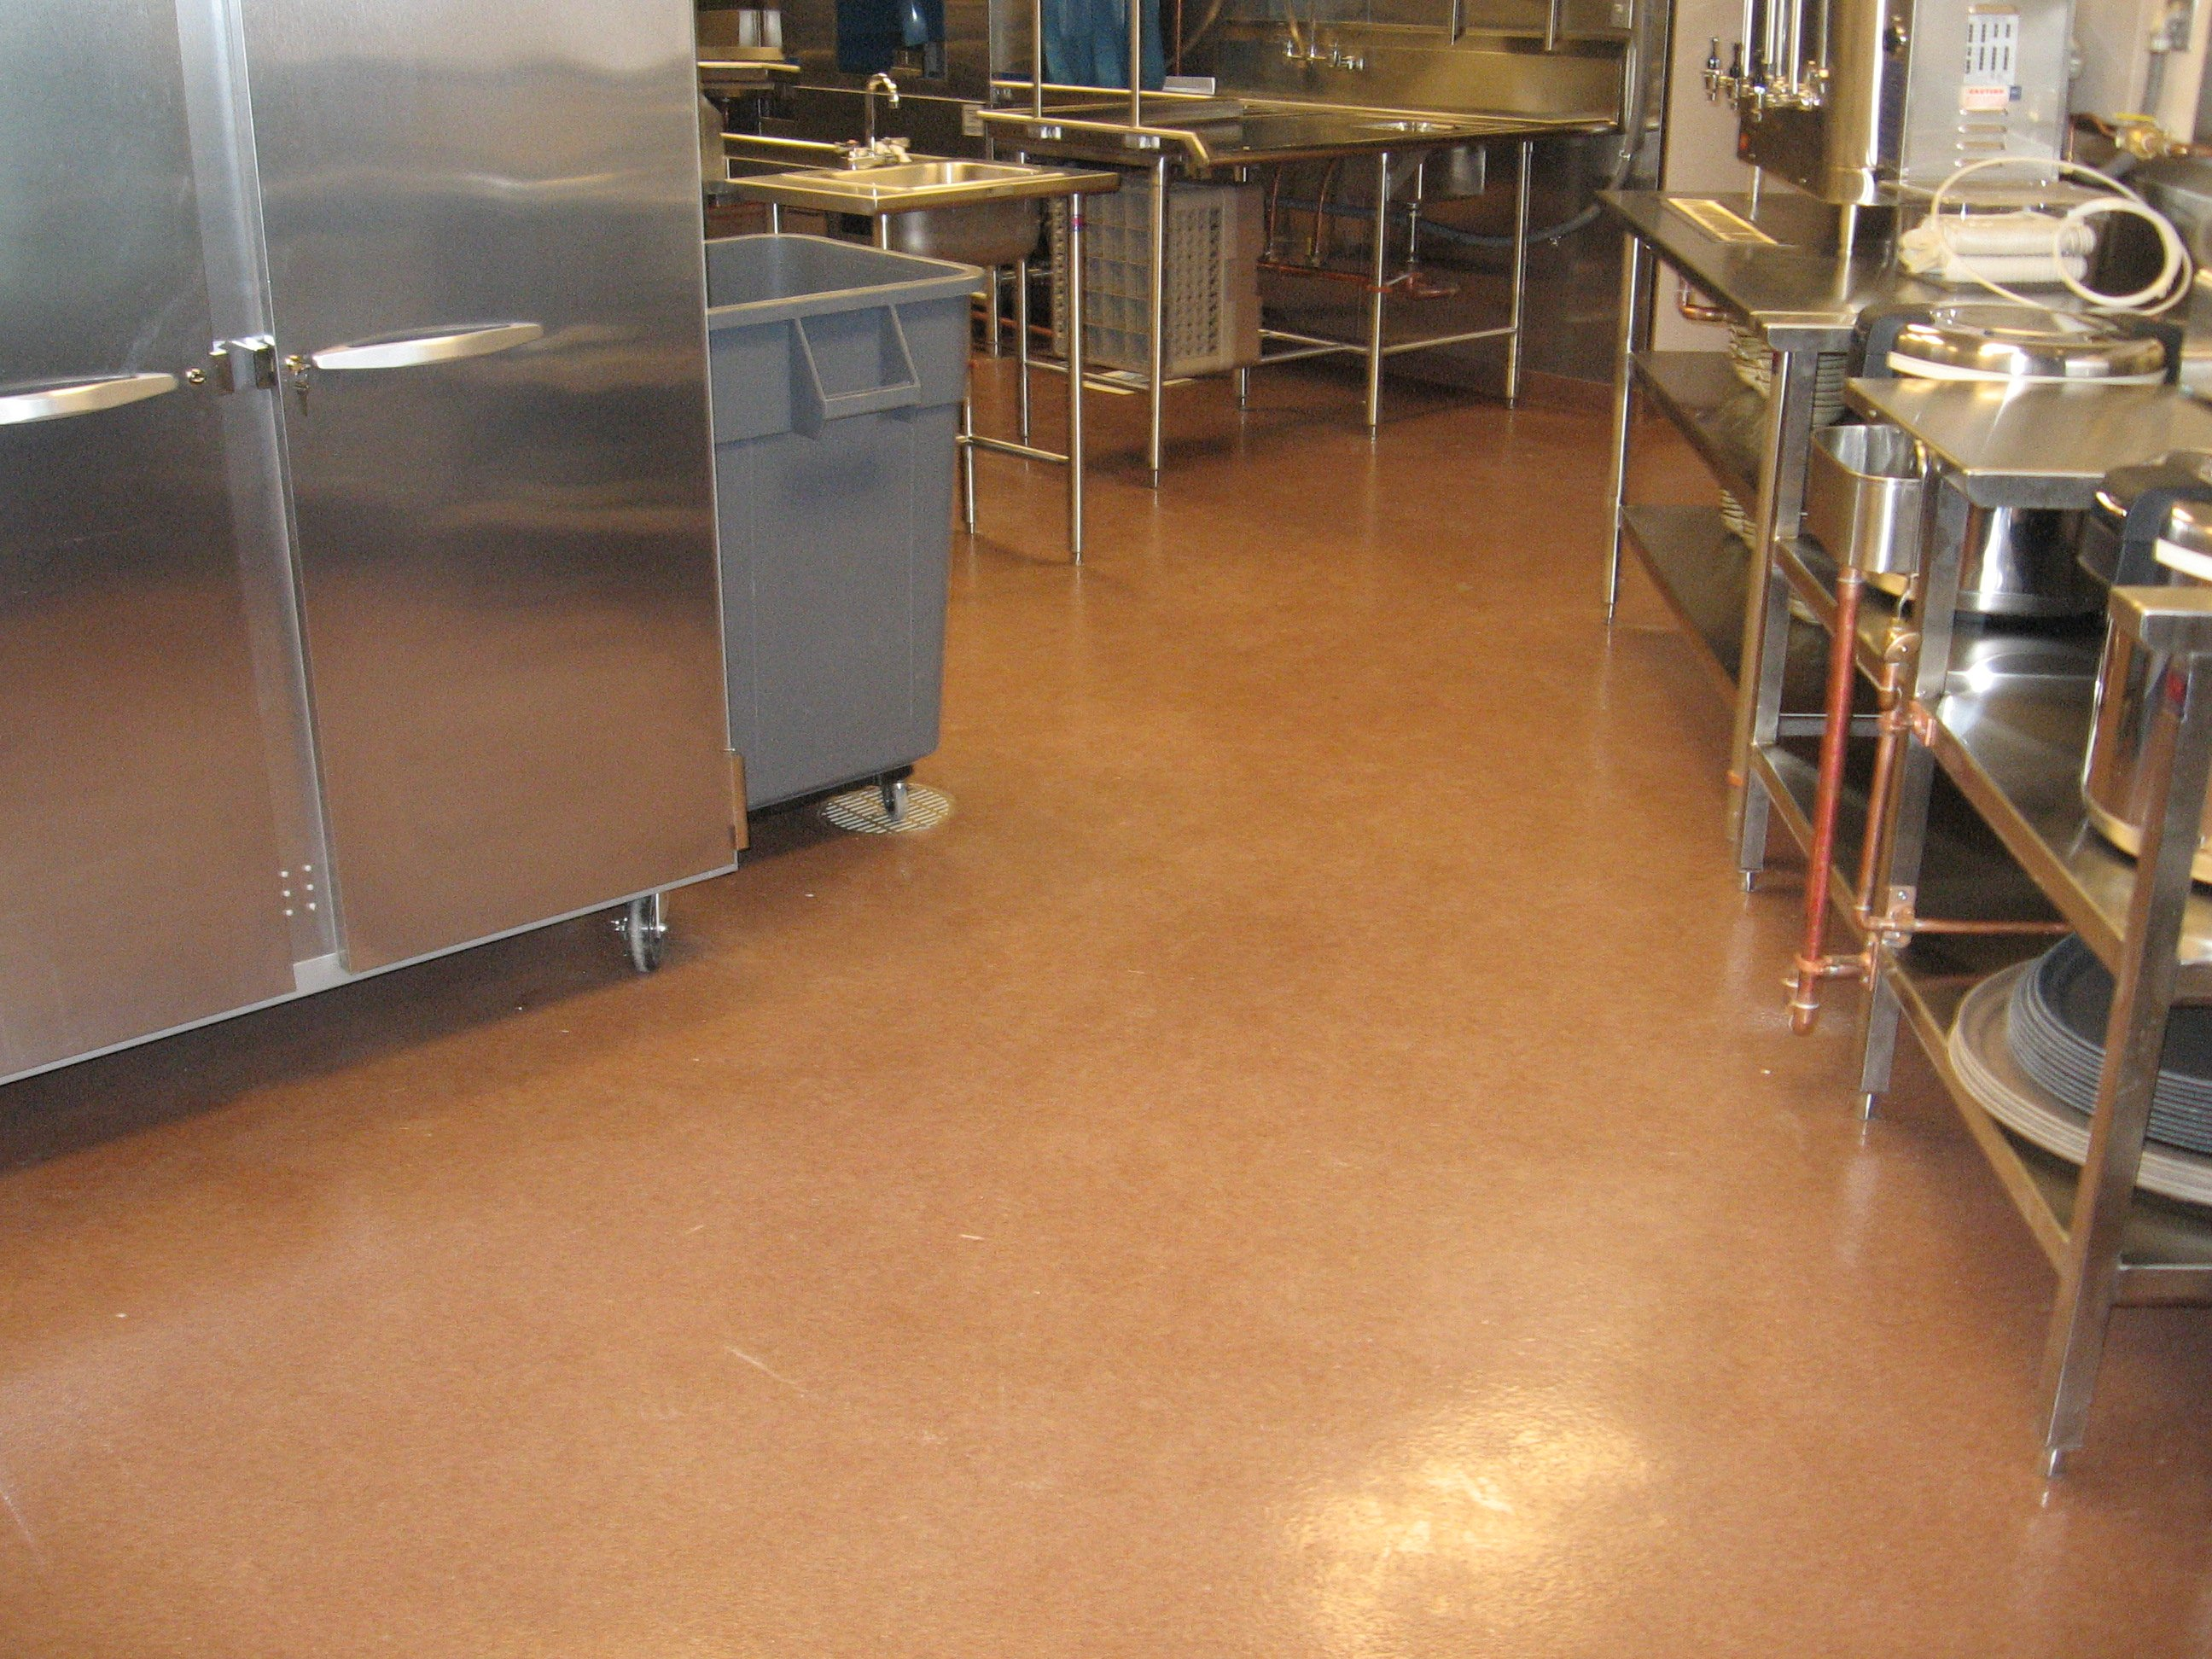 Epoxy Floors for Commercial Kitchens & Cafeteria | CNY ...